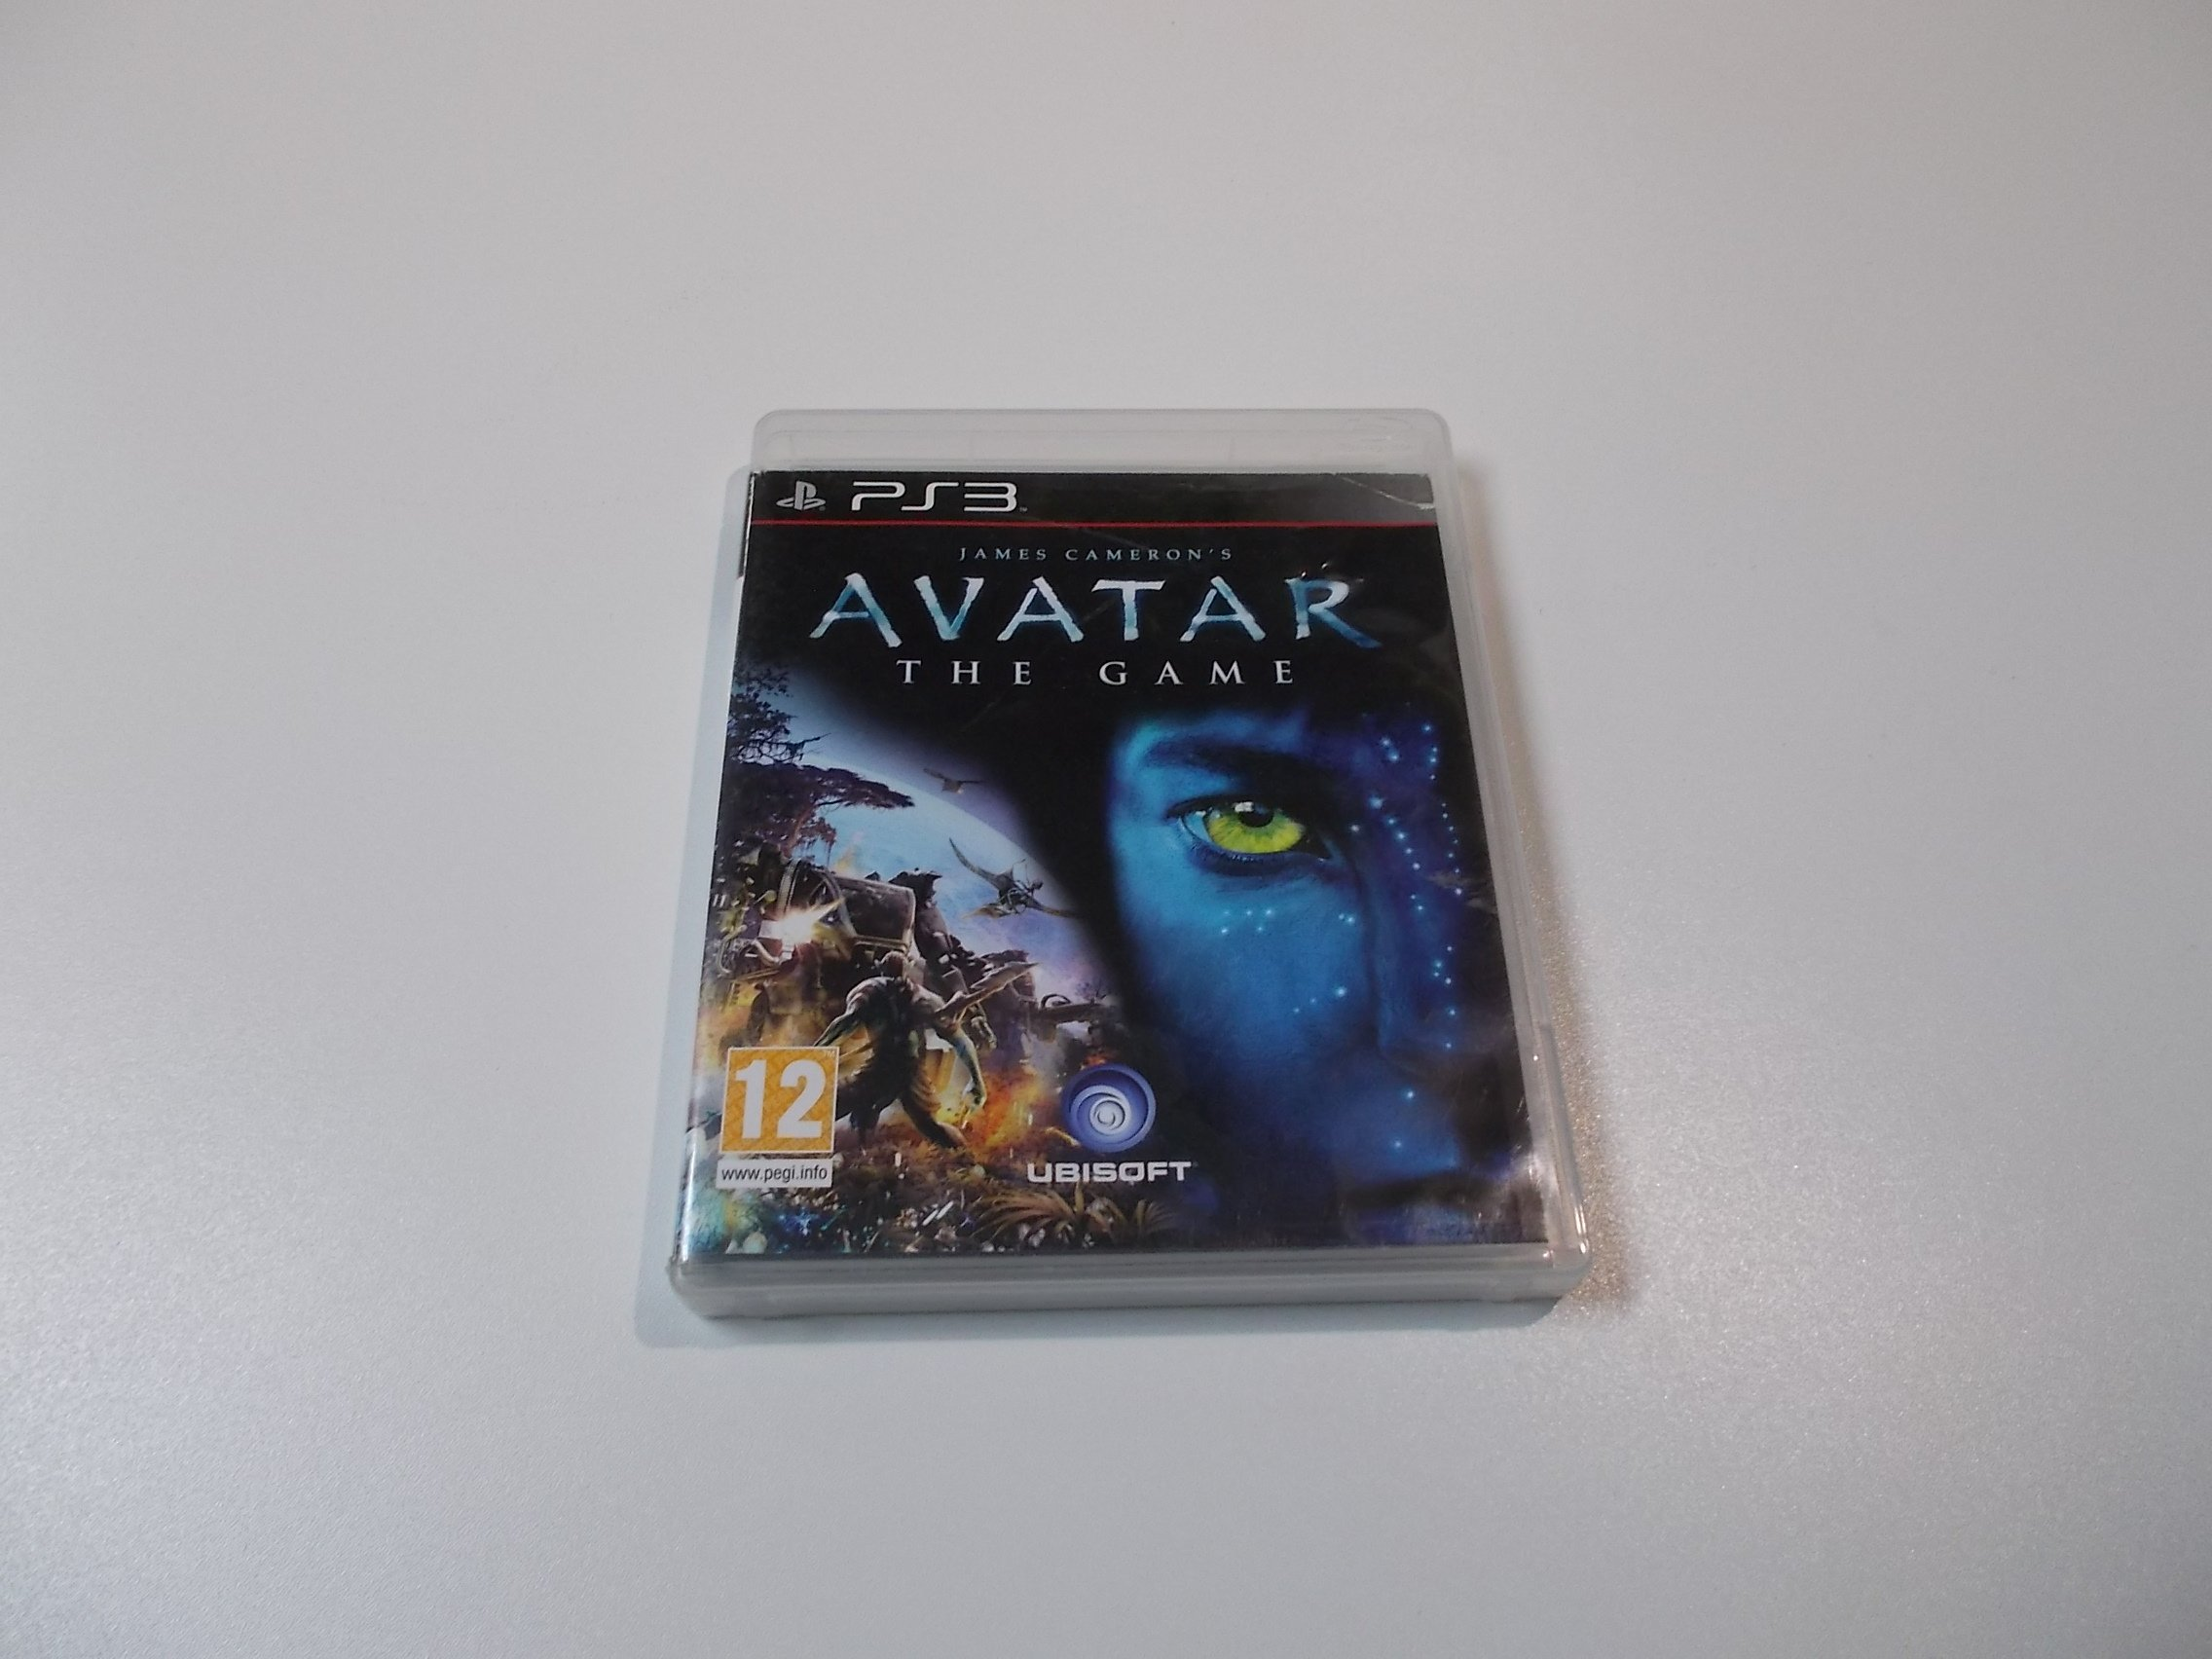 Avatar The Game - GRA Ps3 - Sklep